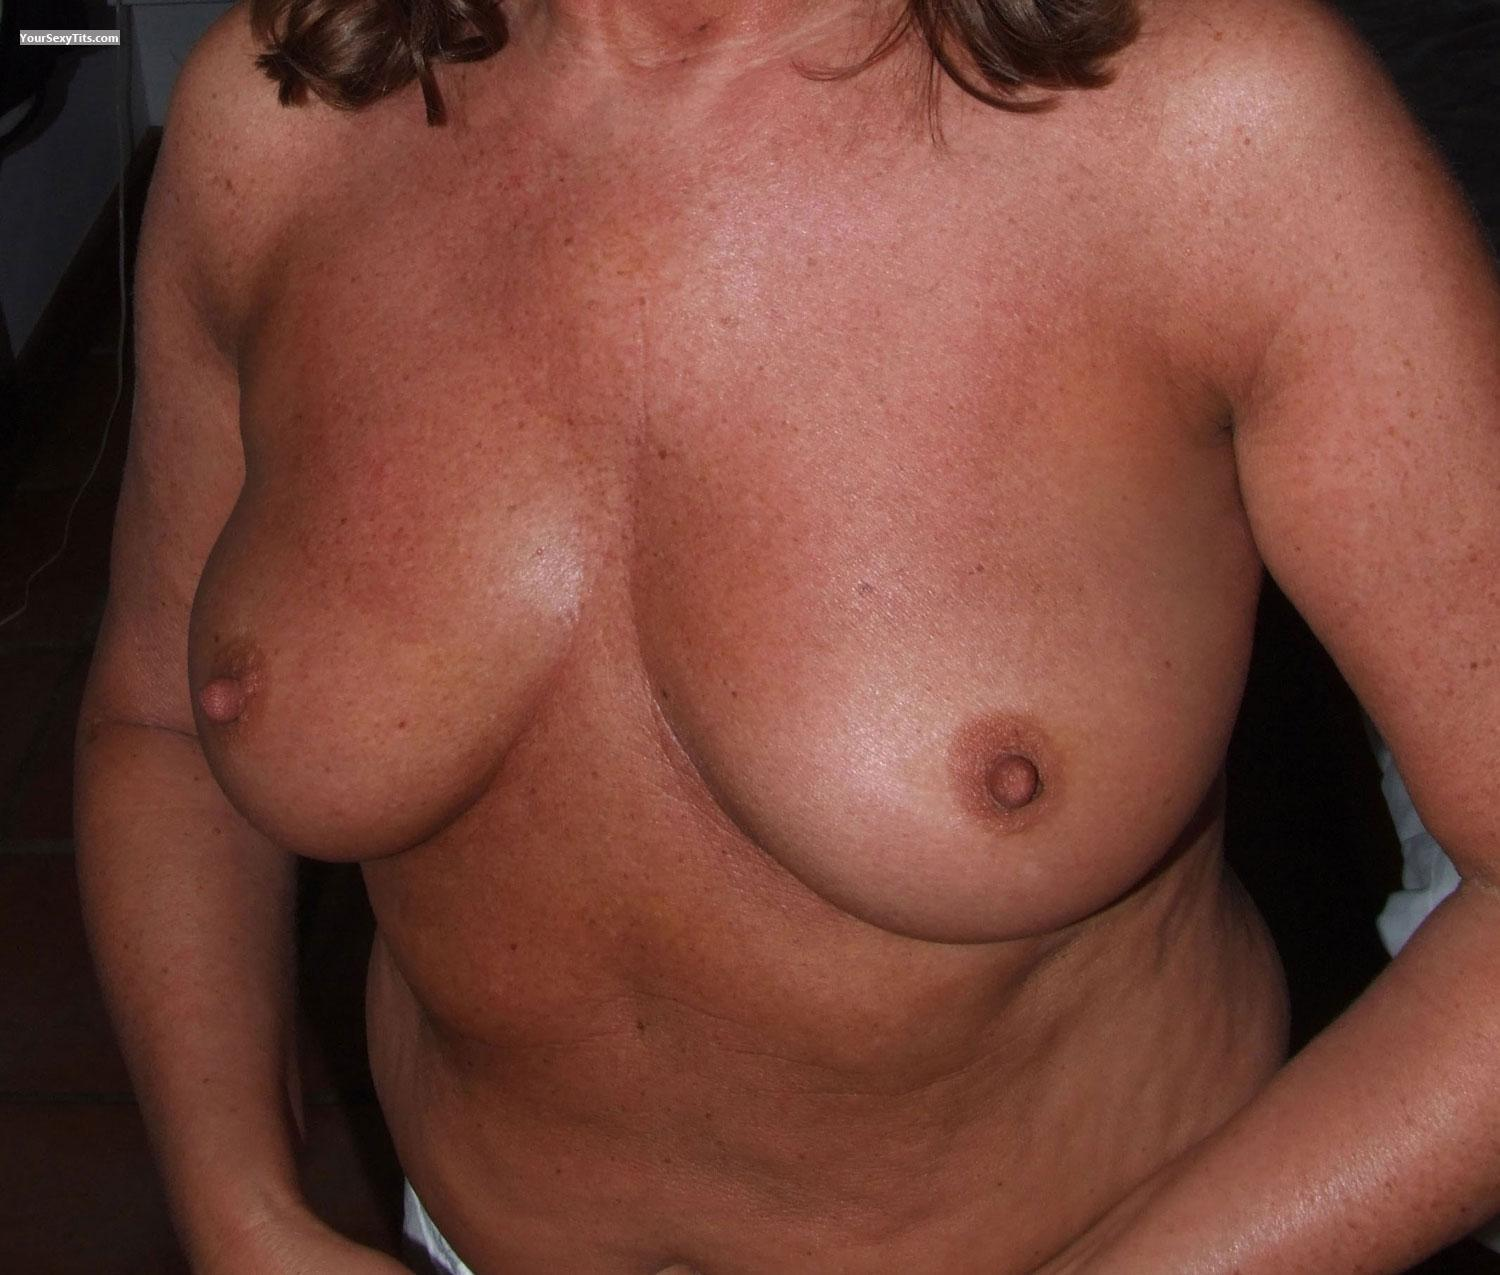 Tit Flash: Wife's Medium Tits - Samantha from United Kingdom